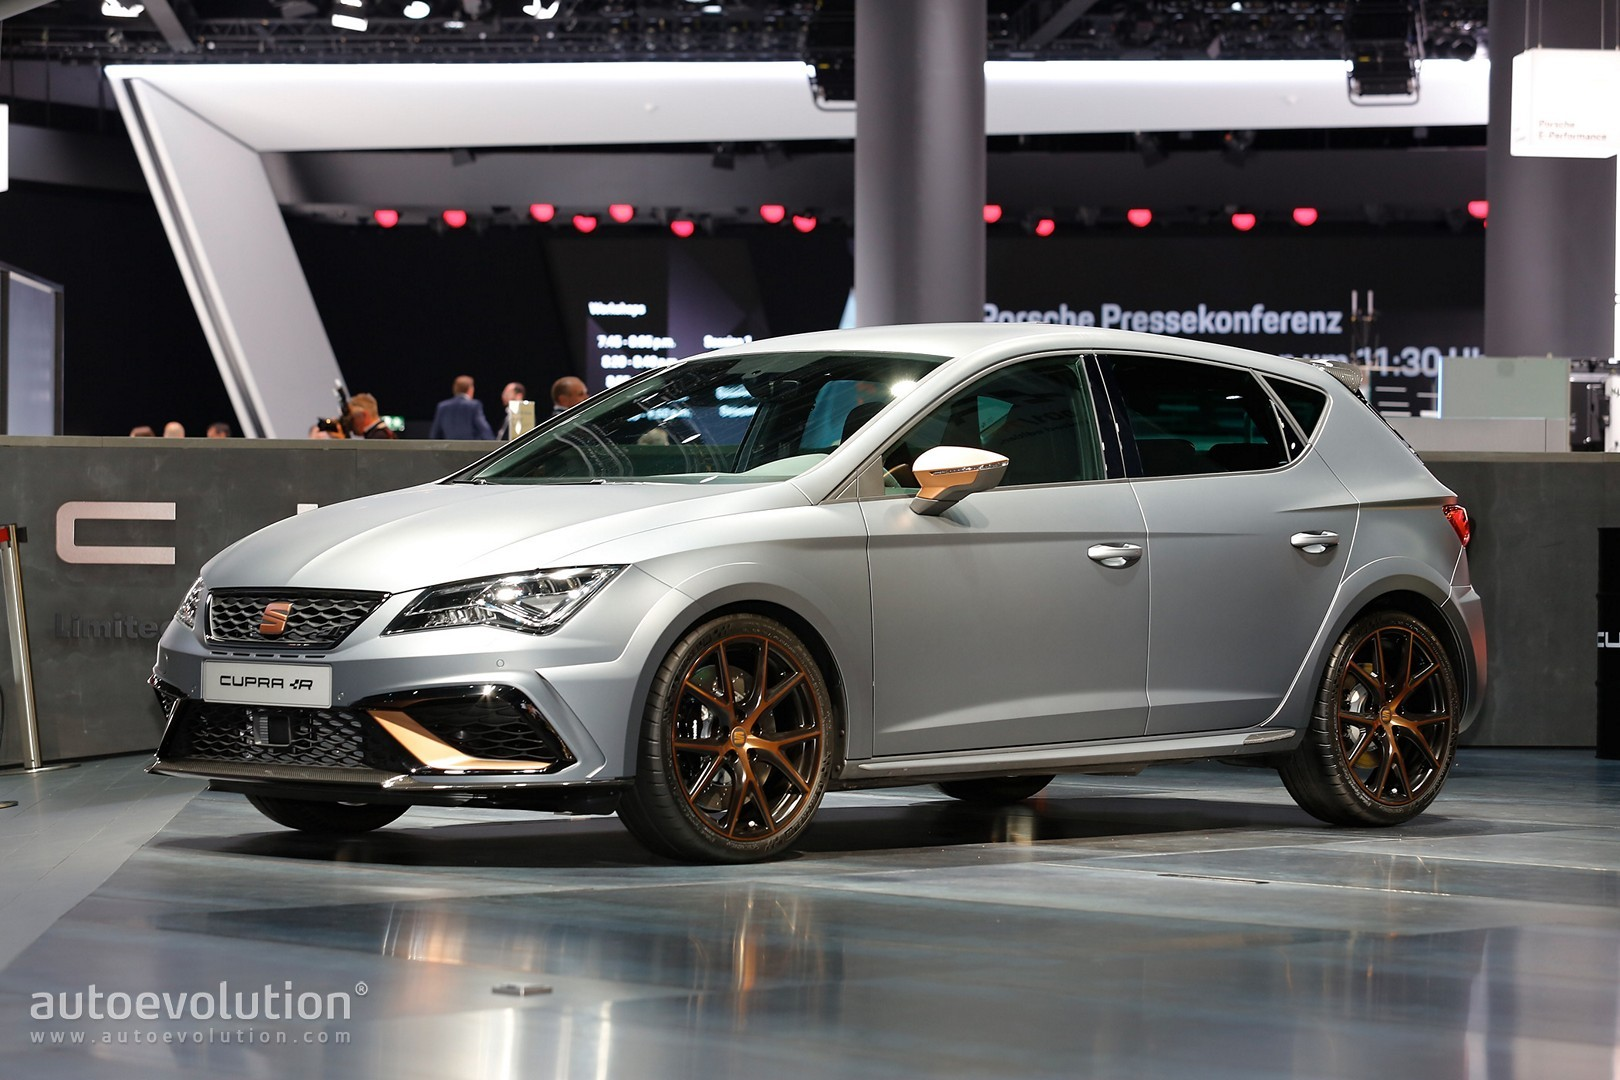 Leon cupra r carbon splitter and copper accents are stunning